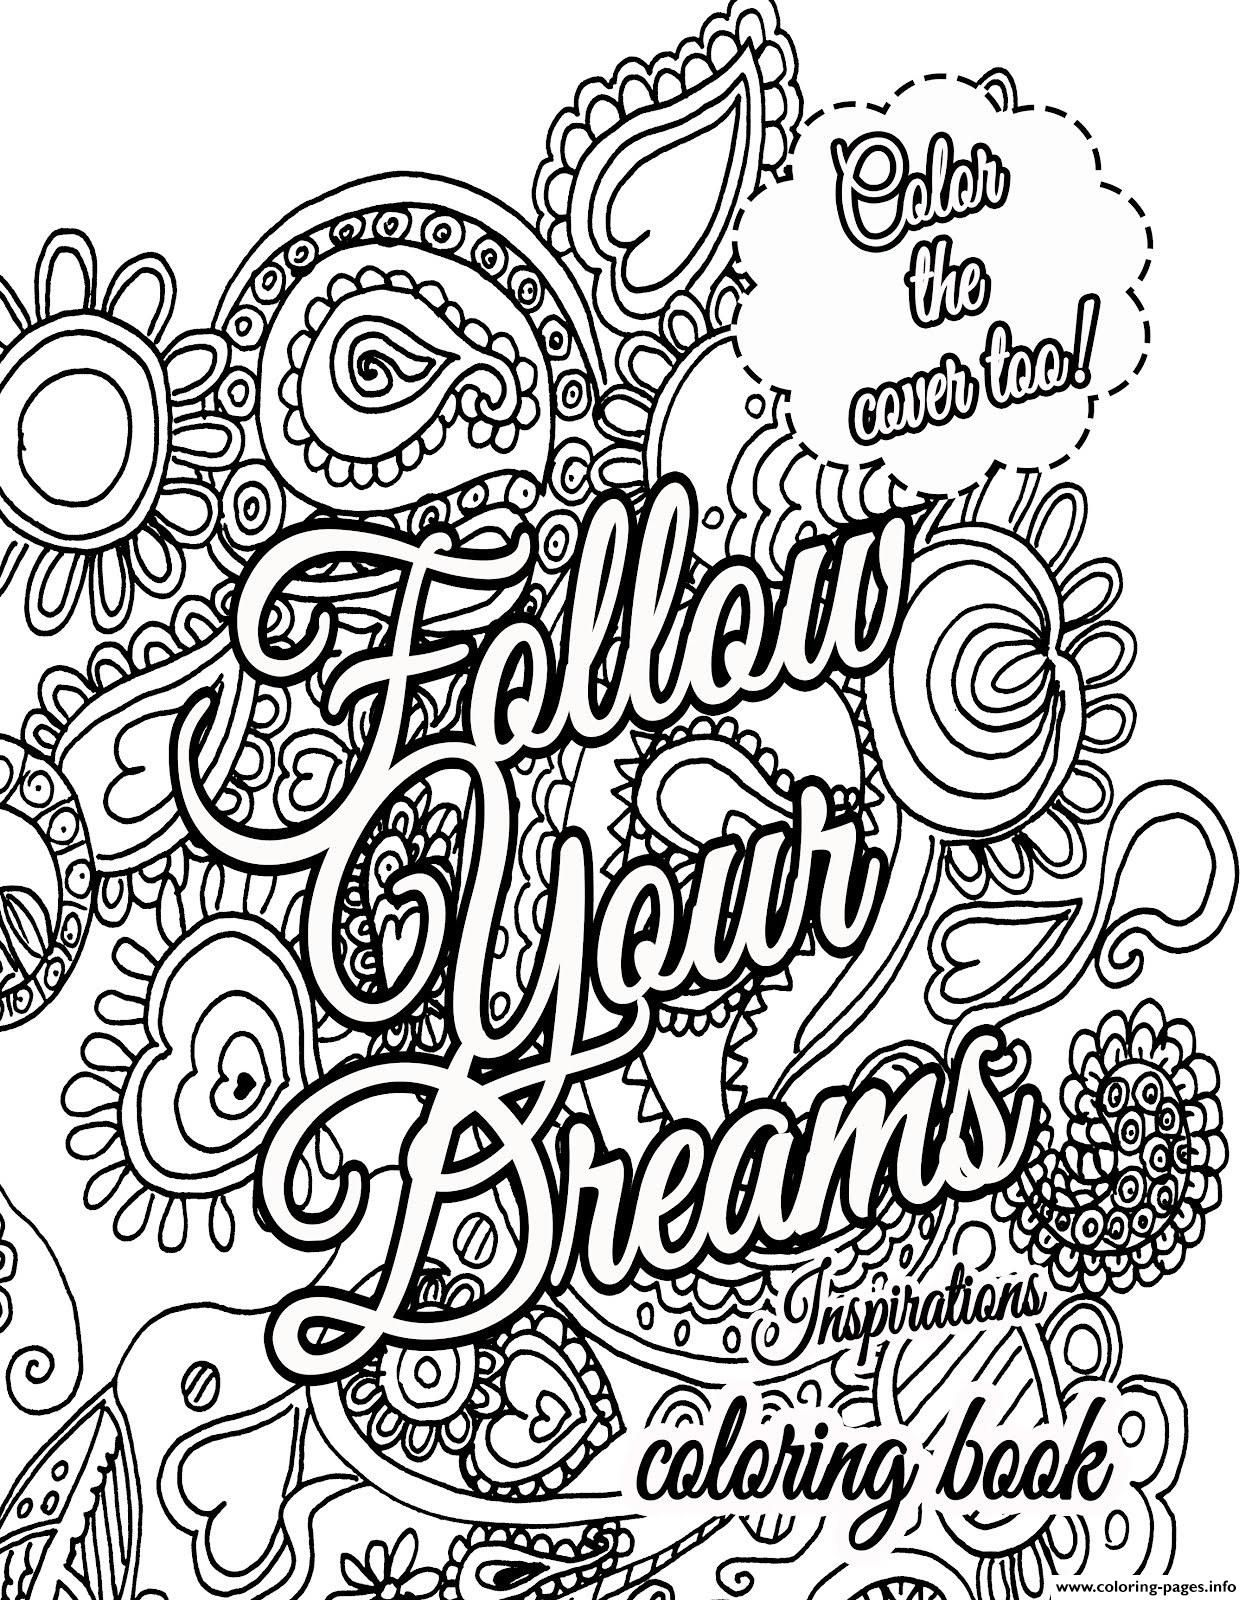 Print Quote About Dream For Adults Coloring Pages Quote Coloring Pages Inspirational Quotes Coloring Coloring Book Pages